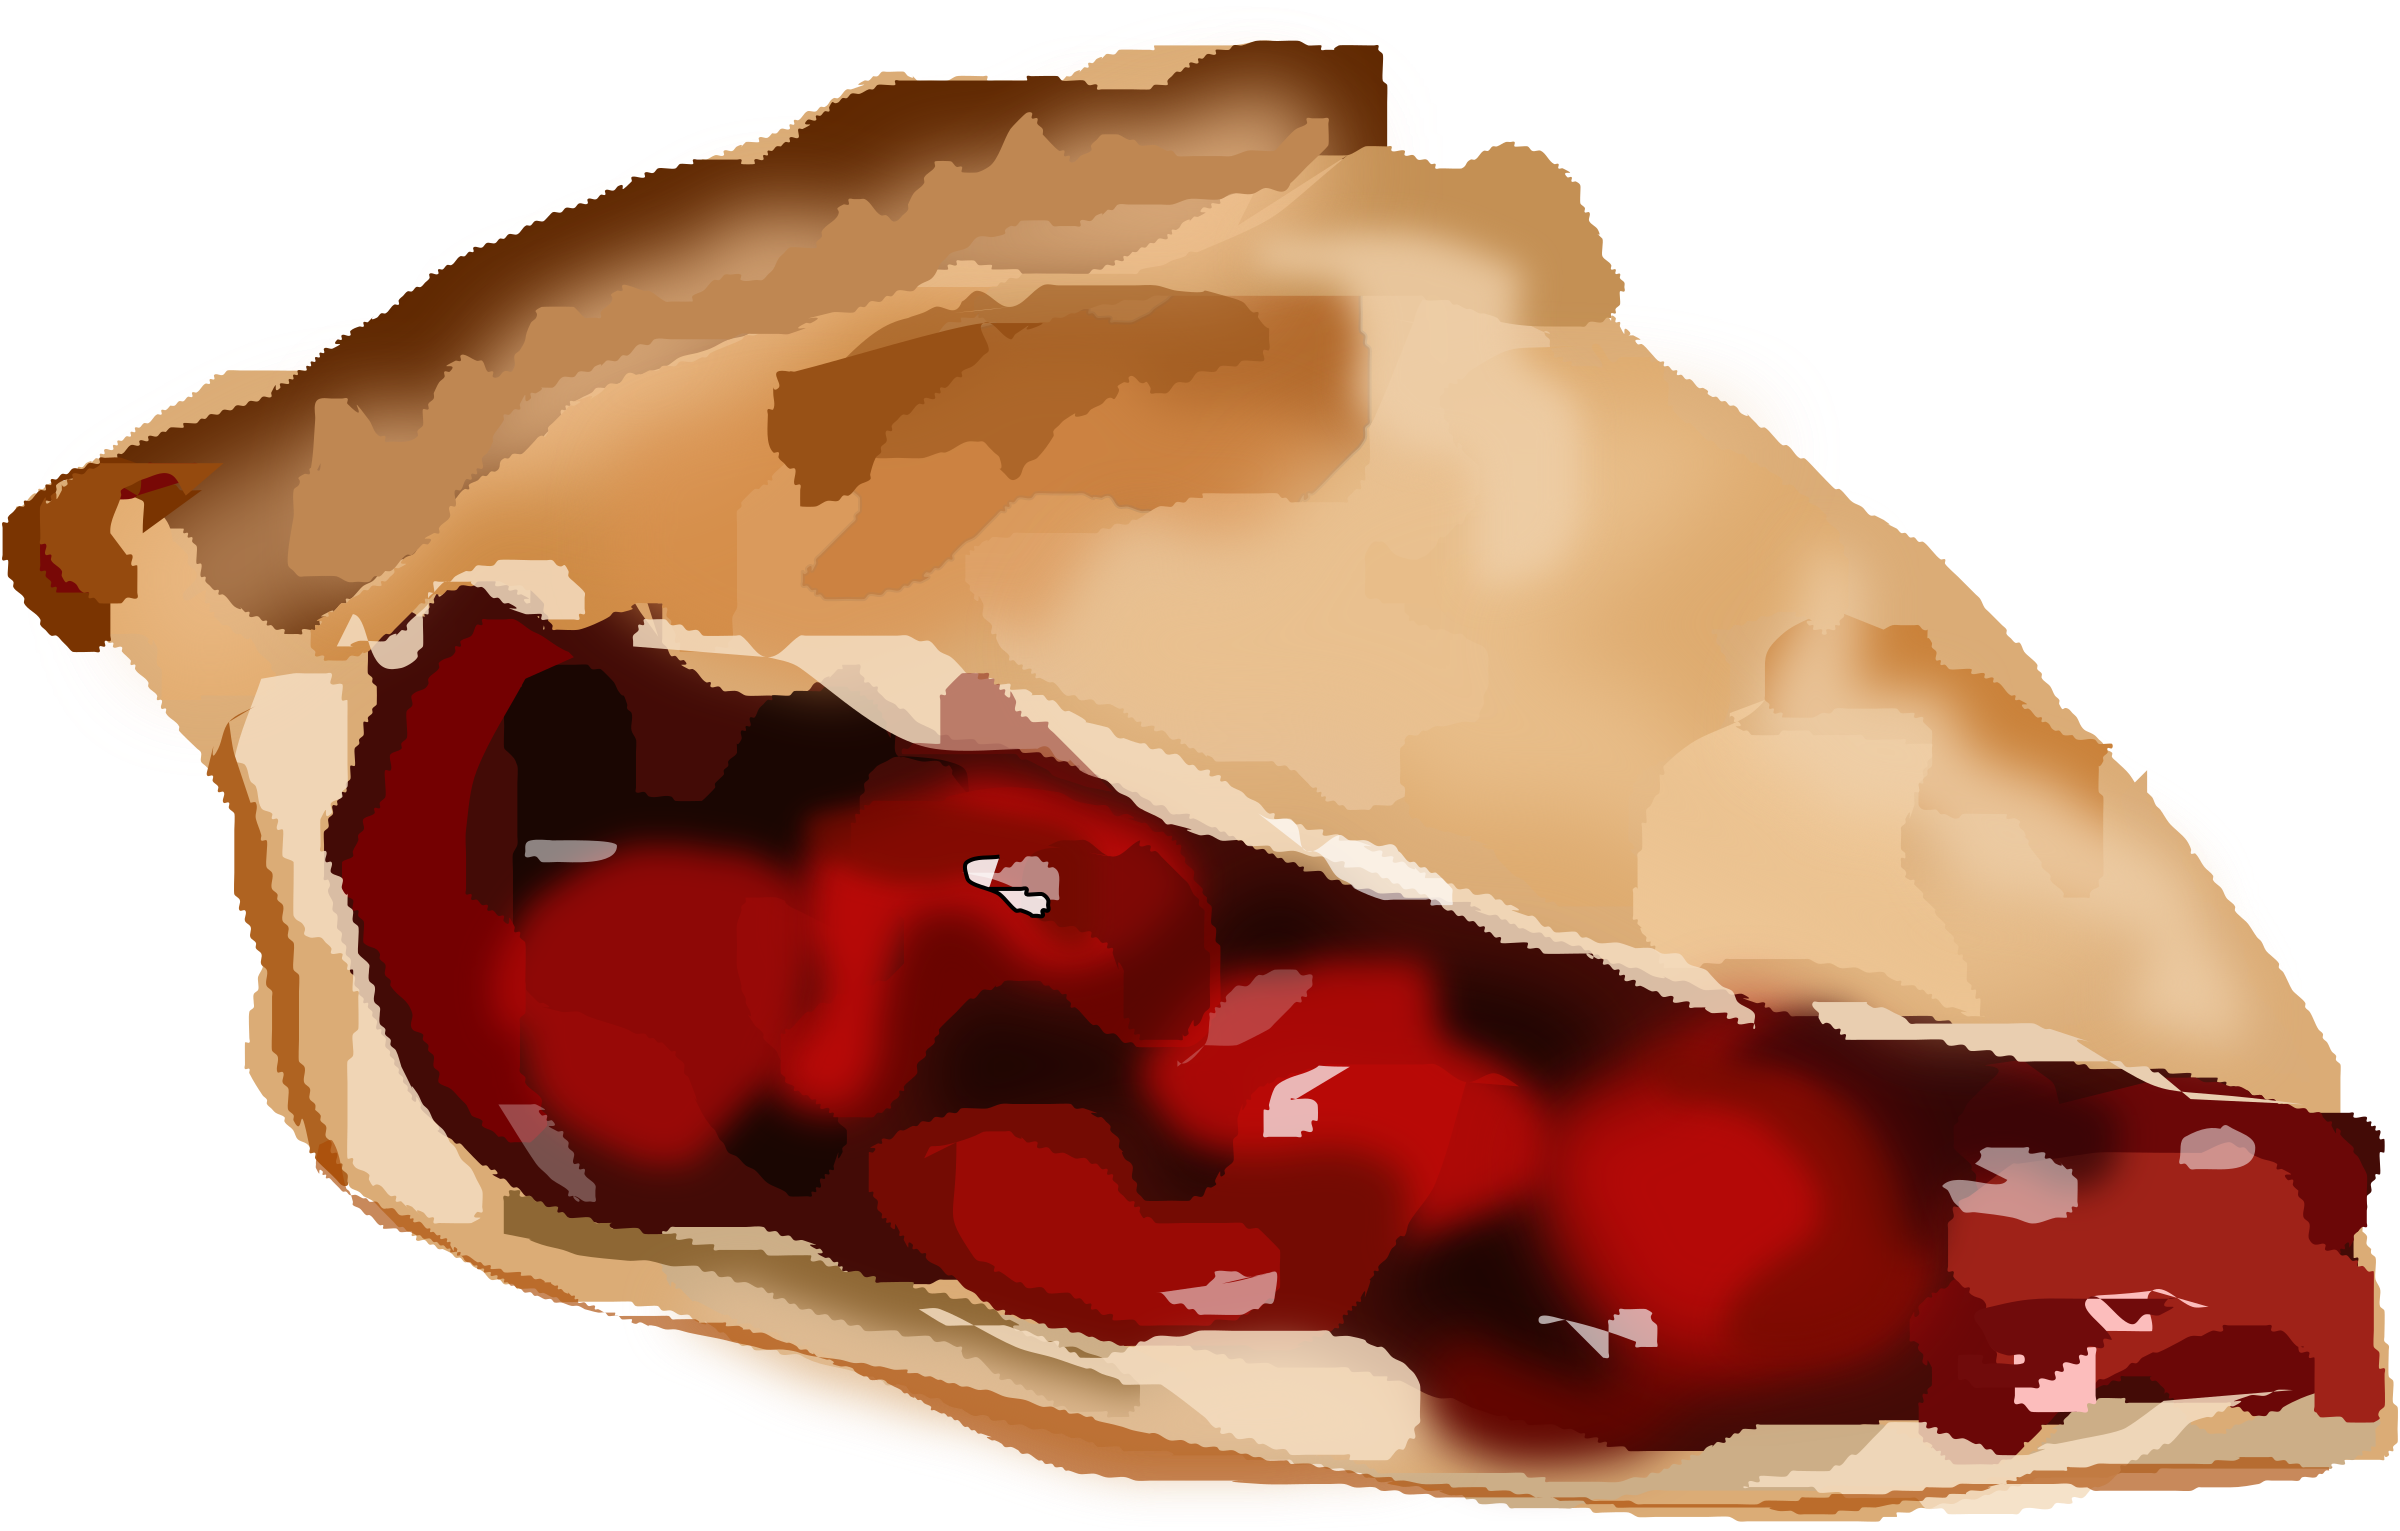 Apple pie slice clipart library Slice Of Cherry Pie Icons PNG - Free PNG and Icons Downloads library